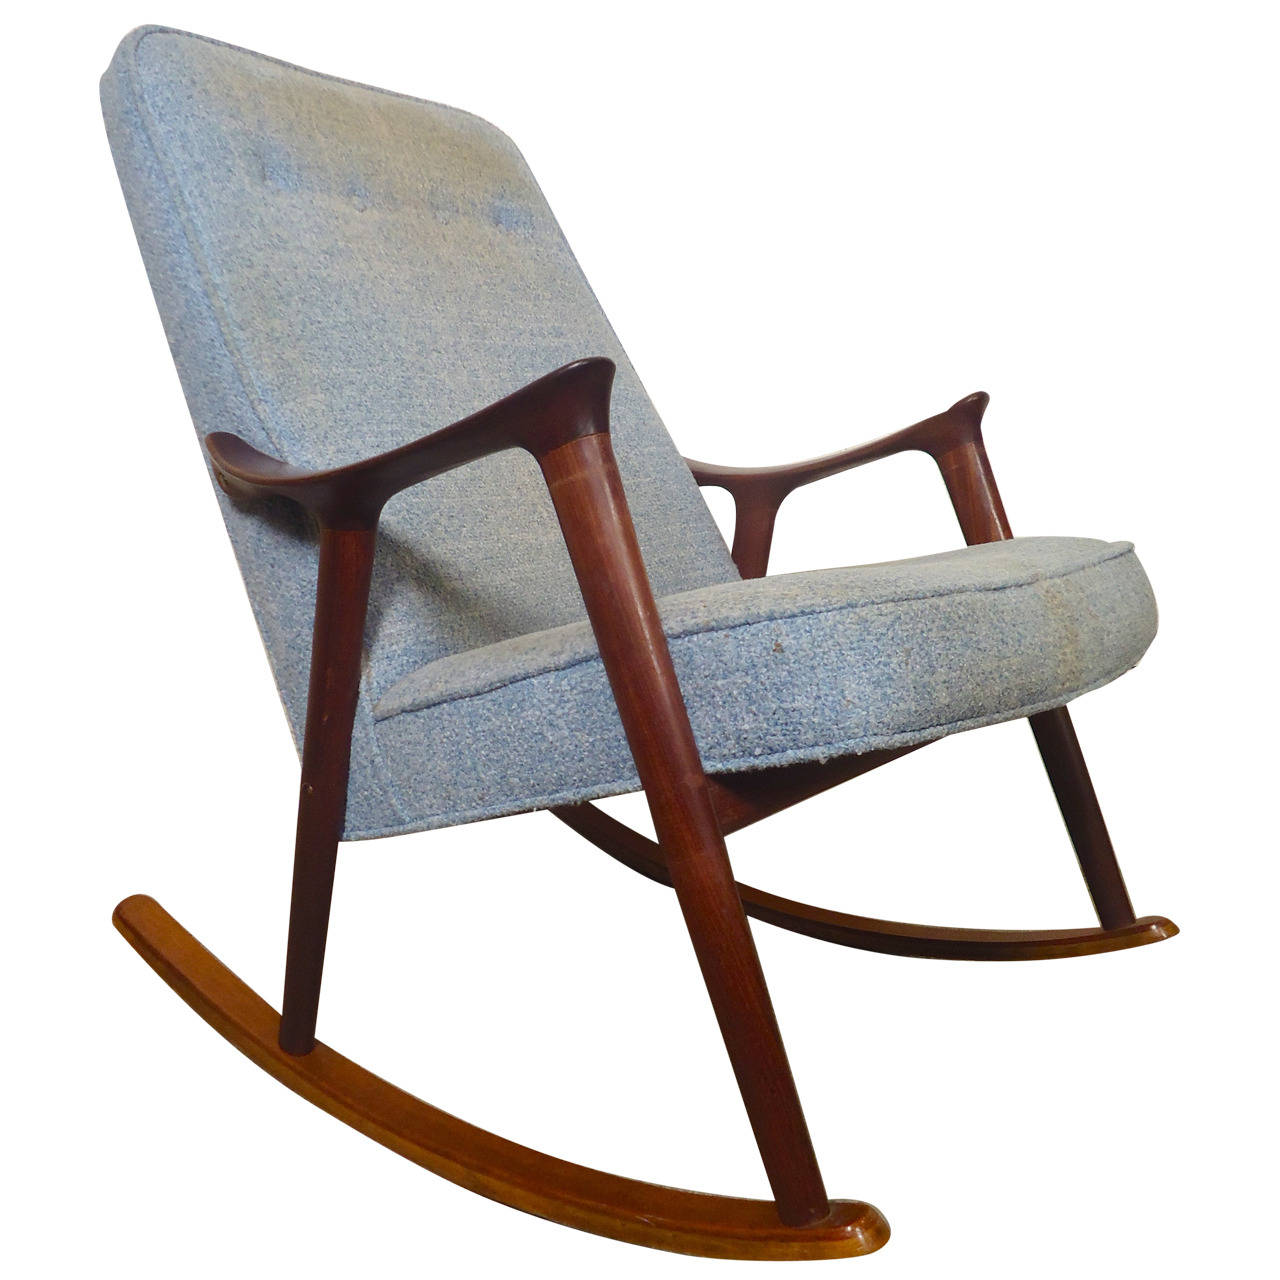 Image of: Cool Mid Century Modern Rocking Chair